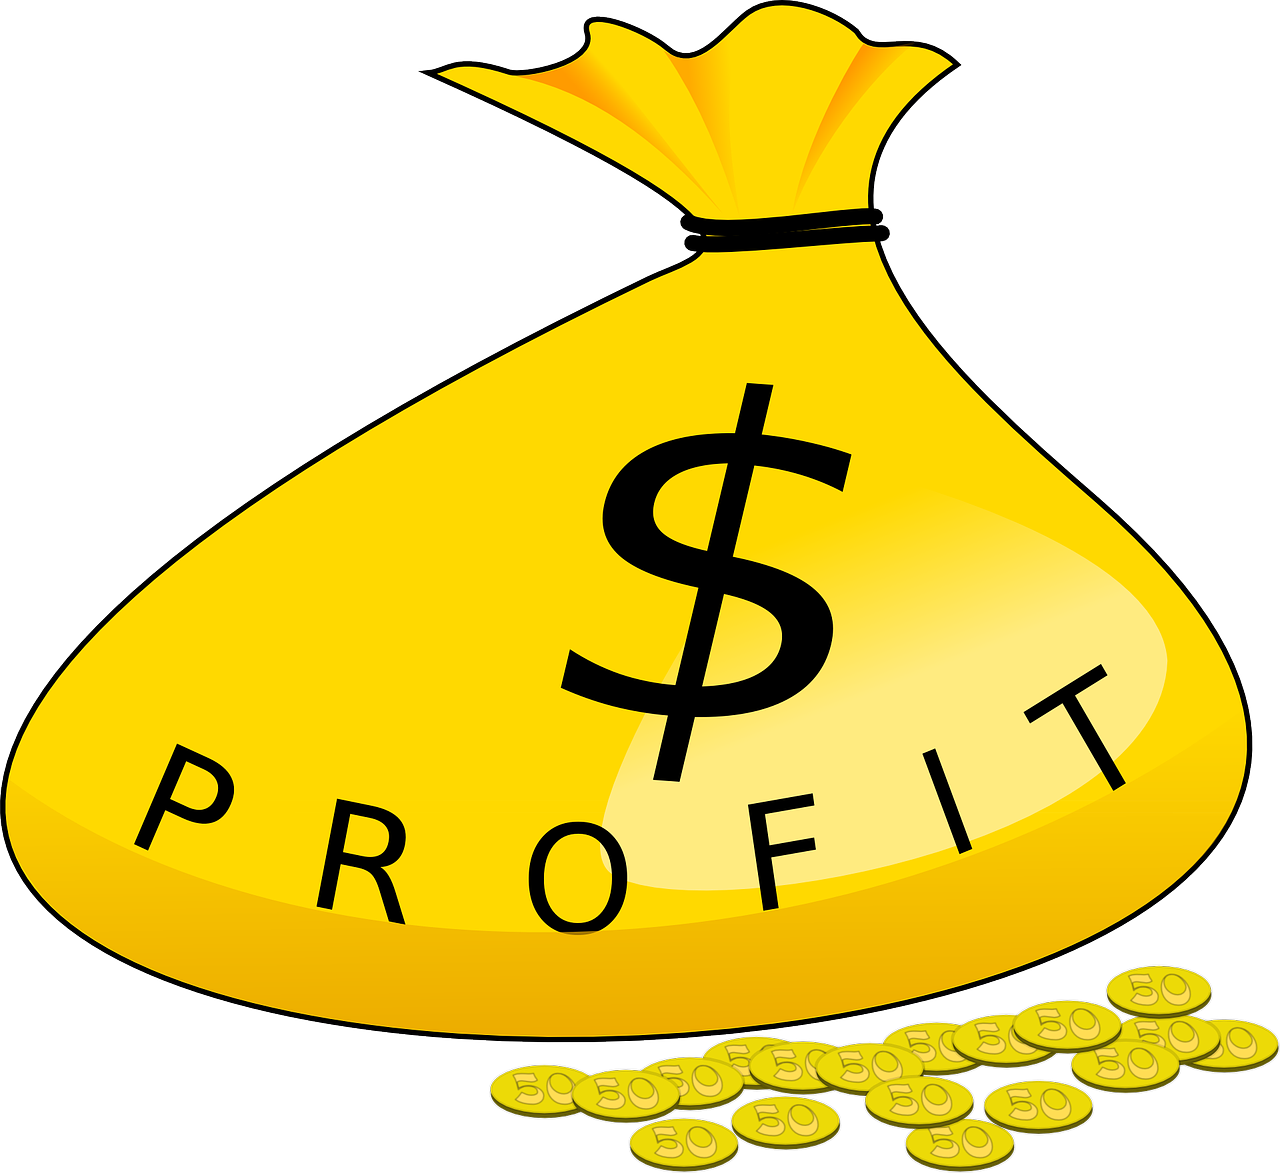 Raise money clipart clip download The Big Lie: Higher Corporate Profits Are Always A Good Thing clip download